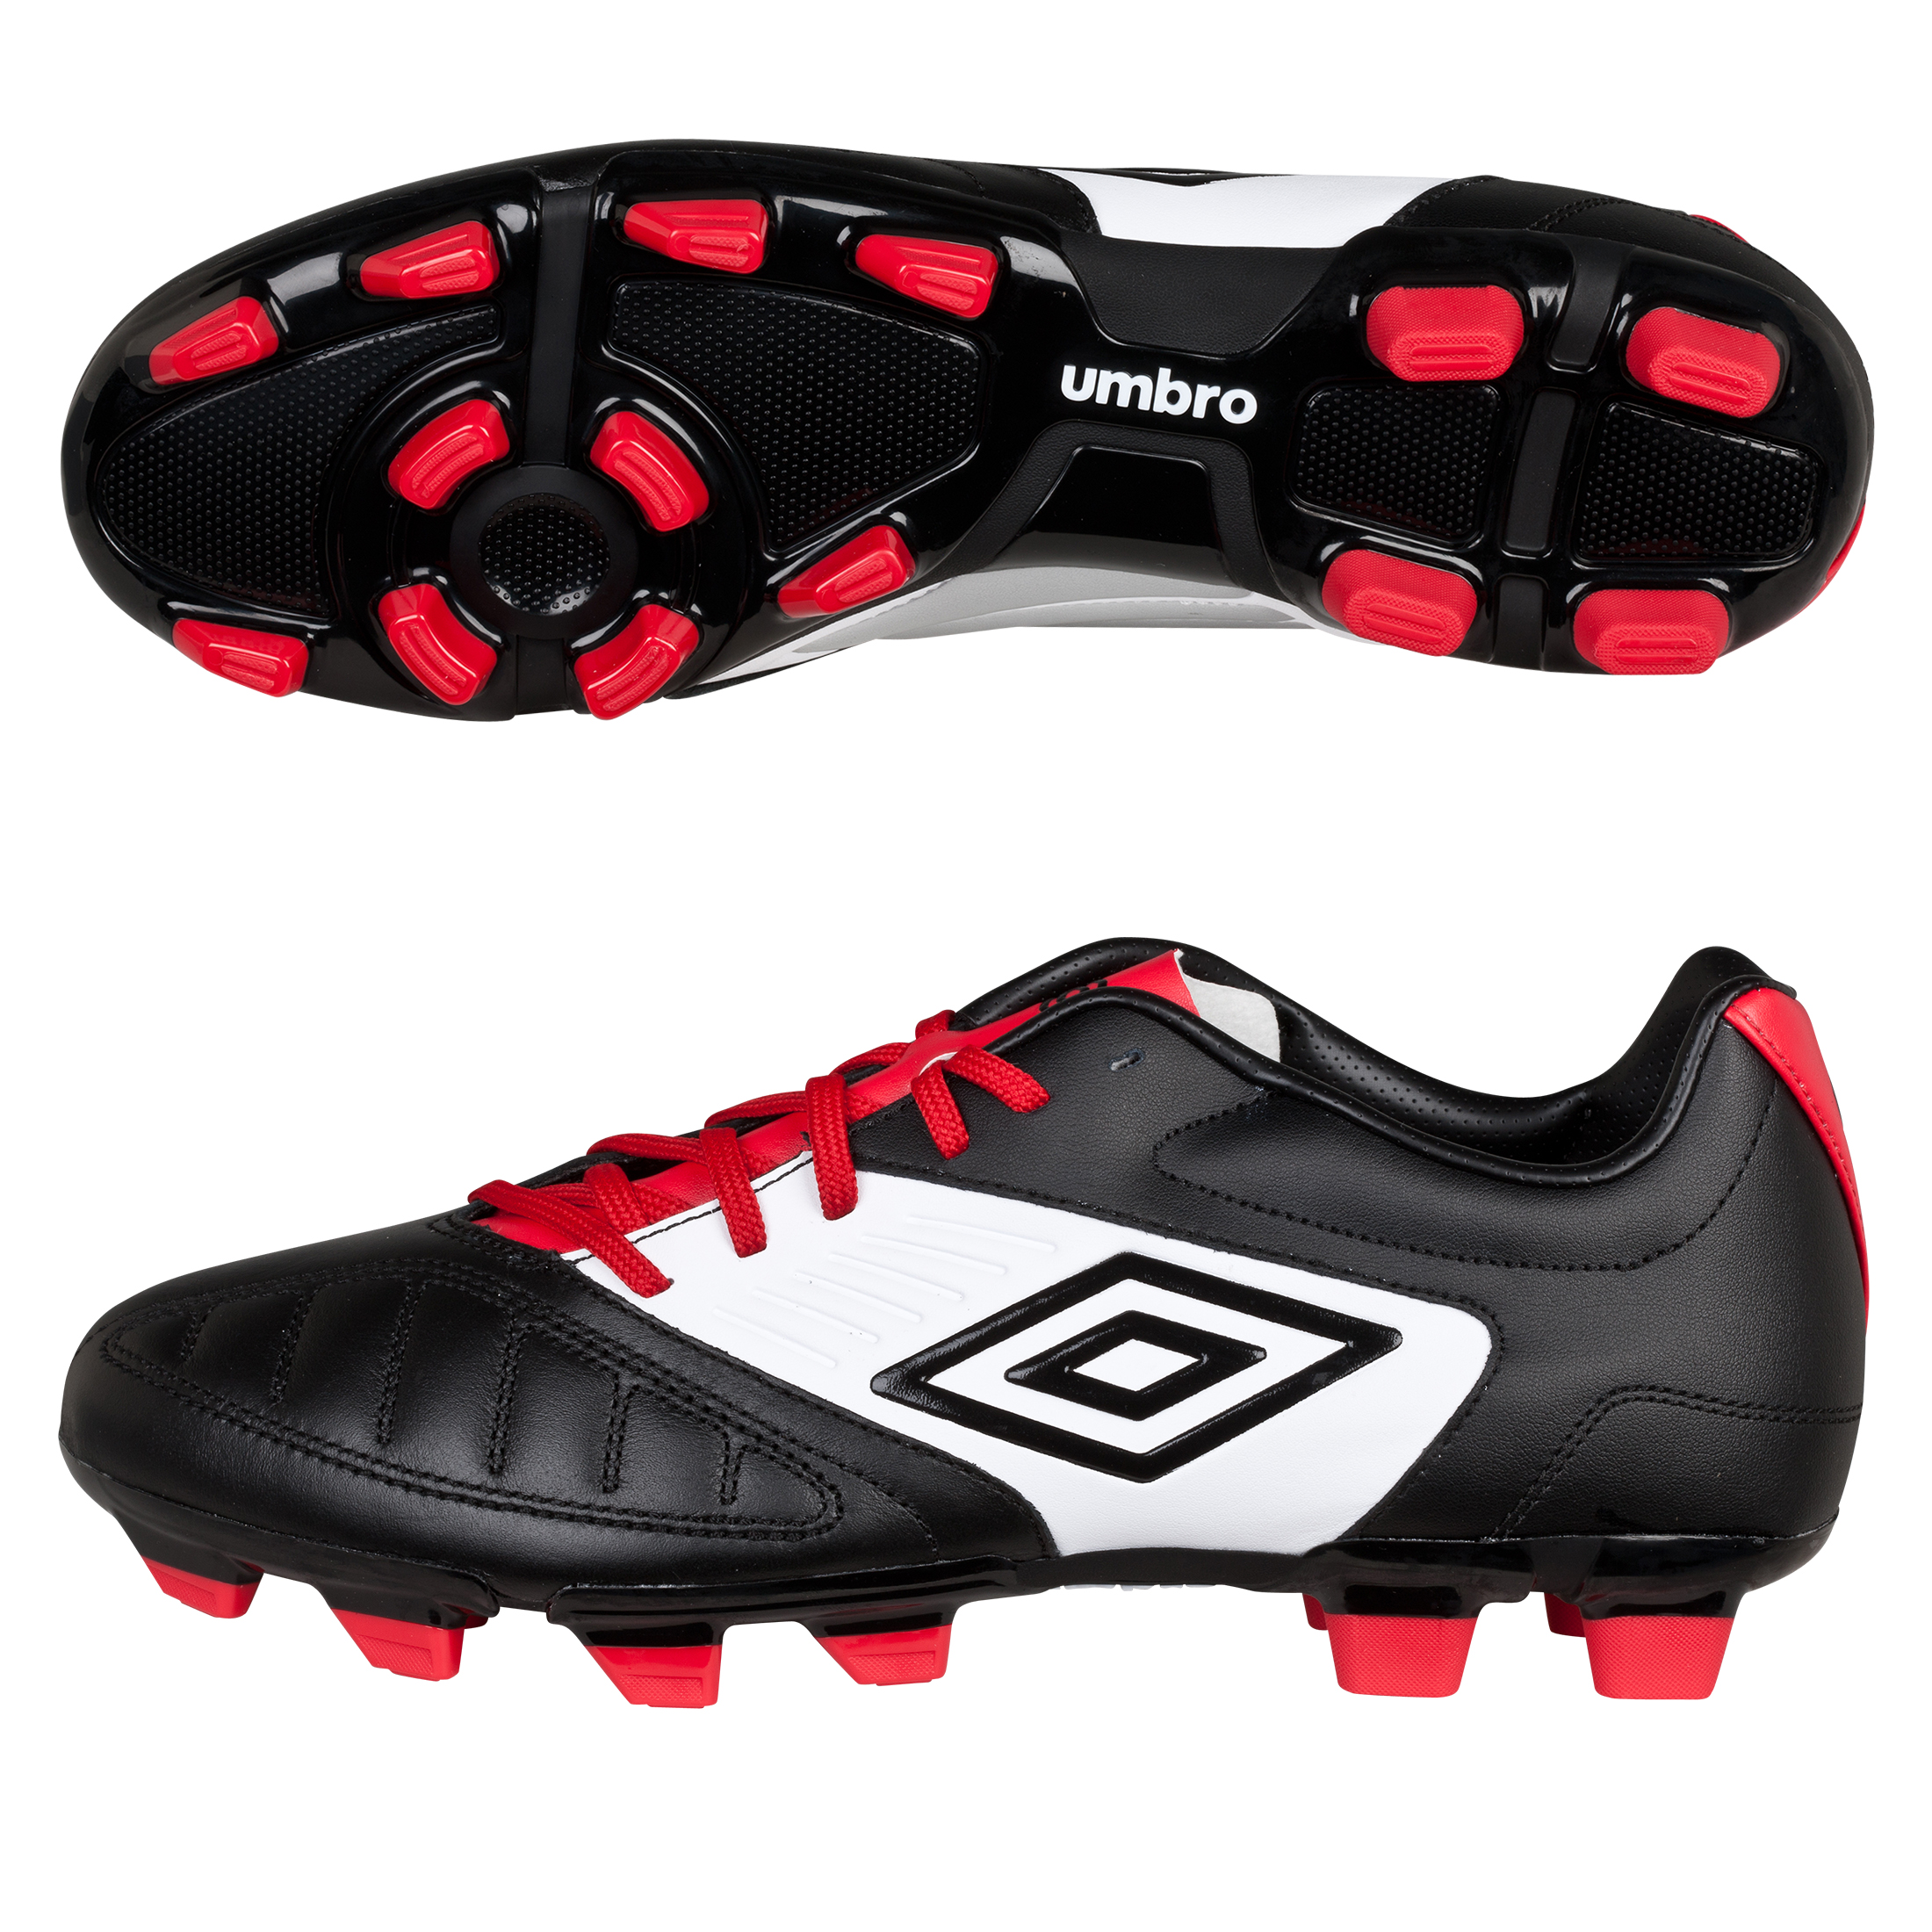 Geometra Premier FG Black/White/True Red